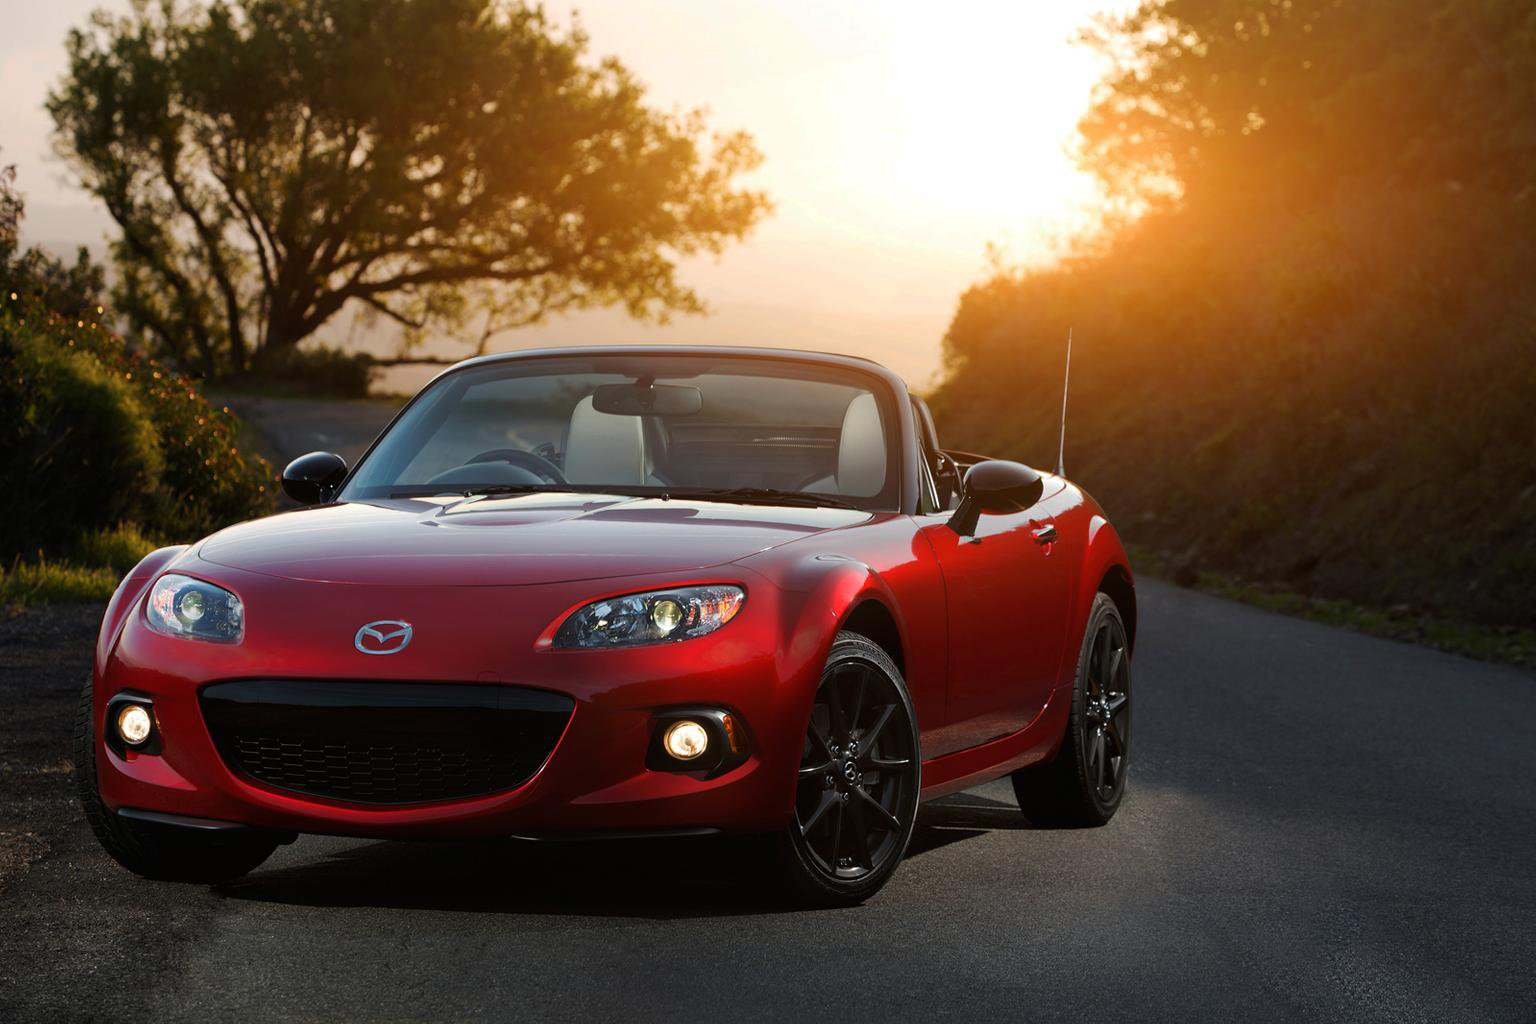 Mazda MX-5 25th Anniversary limited edition unveiled